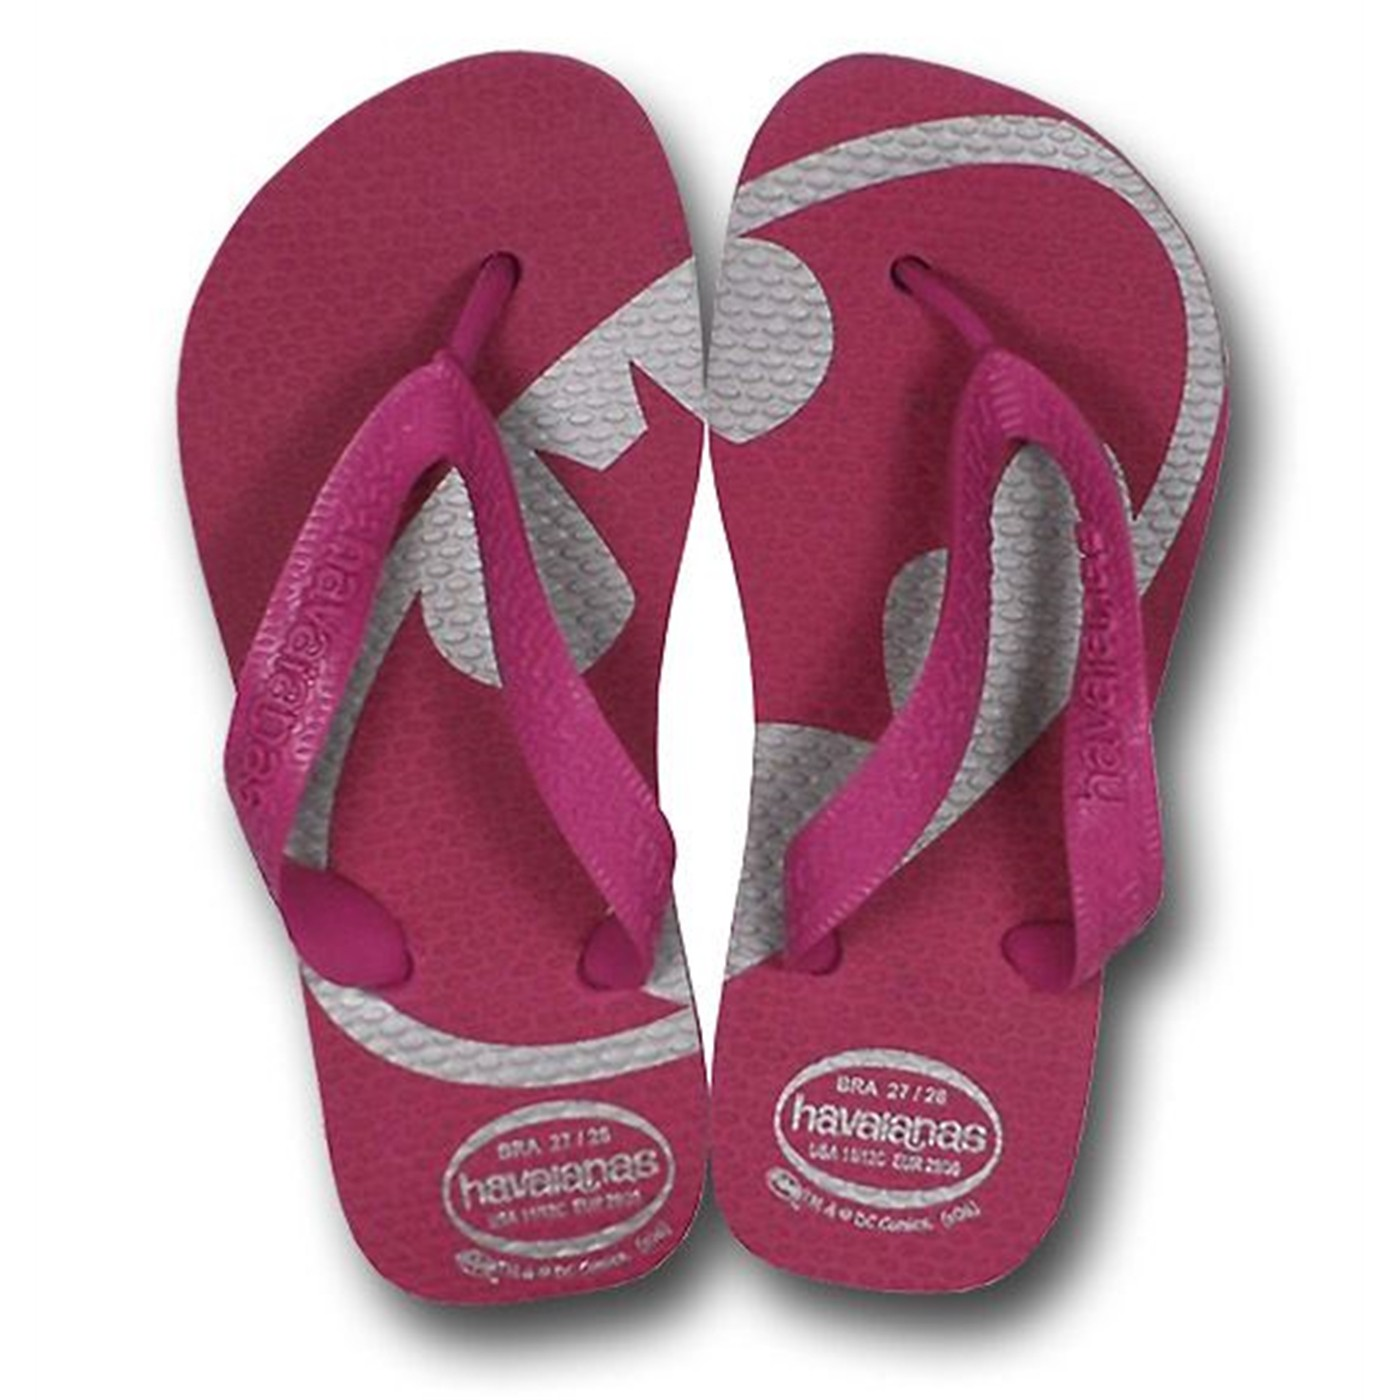 Batgirl Youth Havaianas Pink and Silver Flip Flops